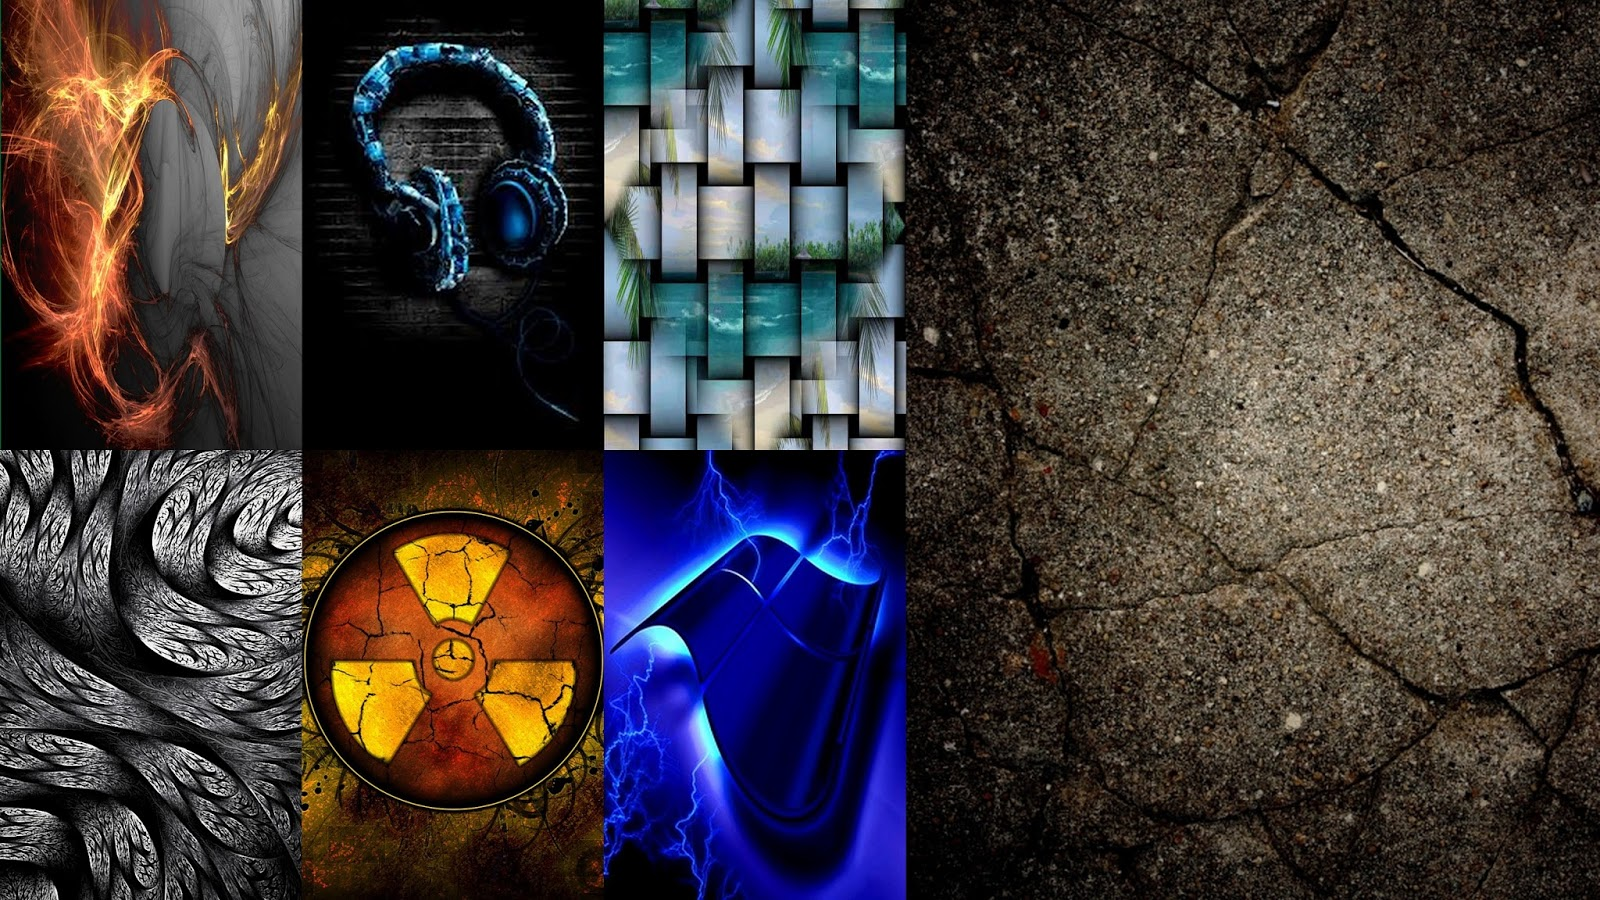 Download 480x800 Abstract HD Wallpapers Pack 2 Pack Contains 150 HD 1600x900